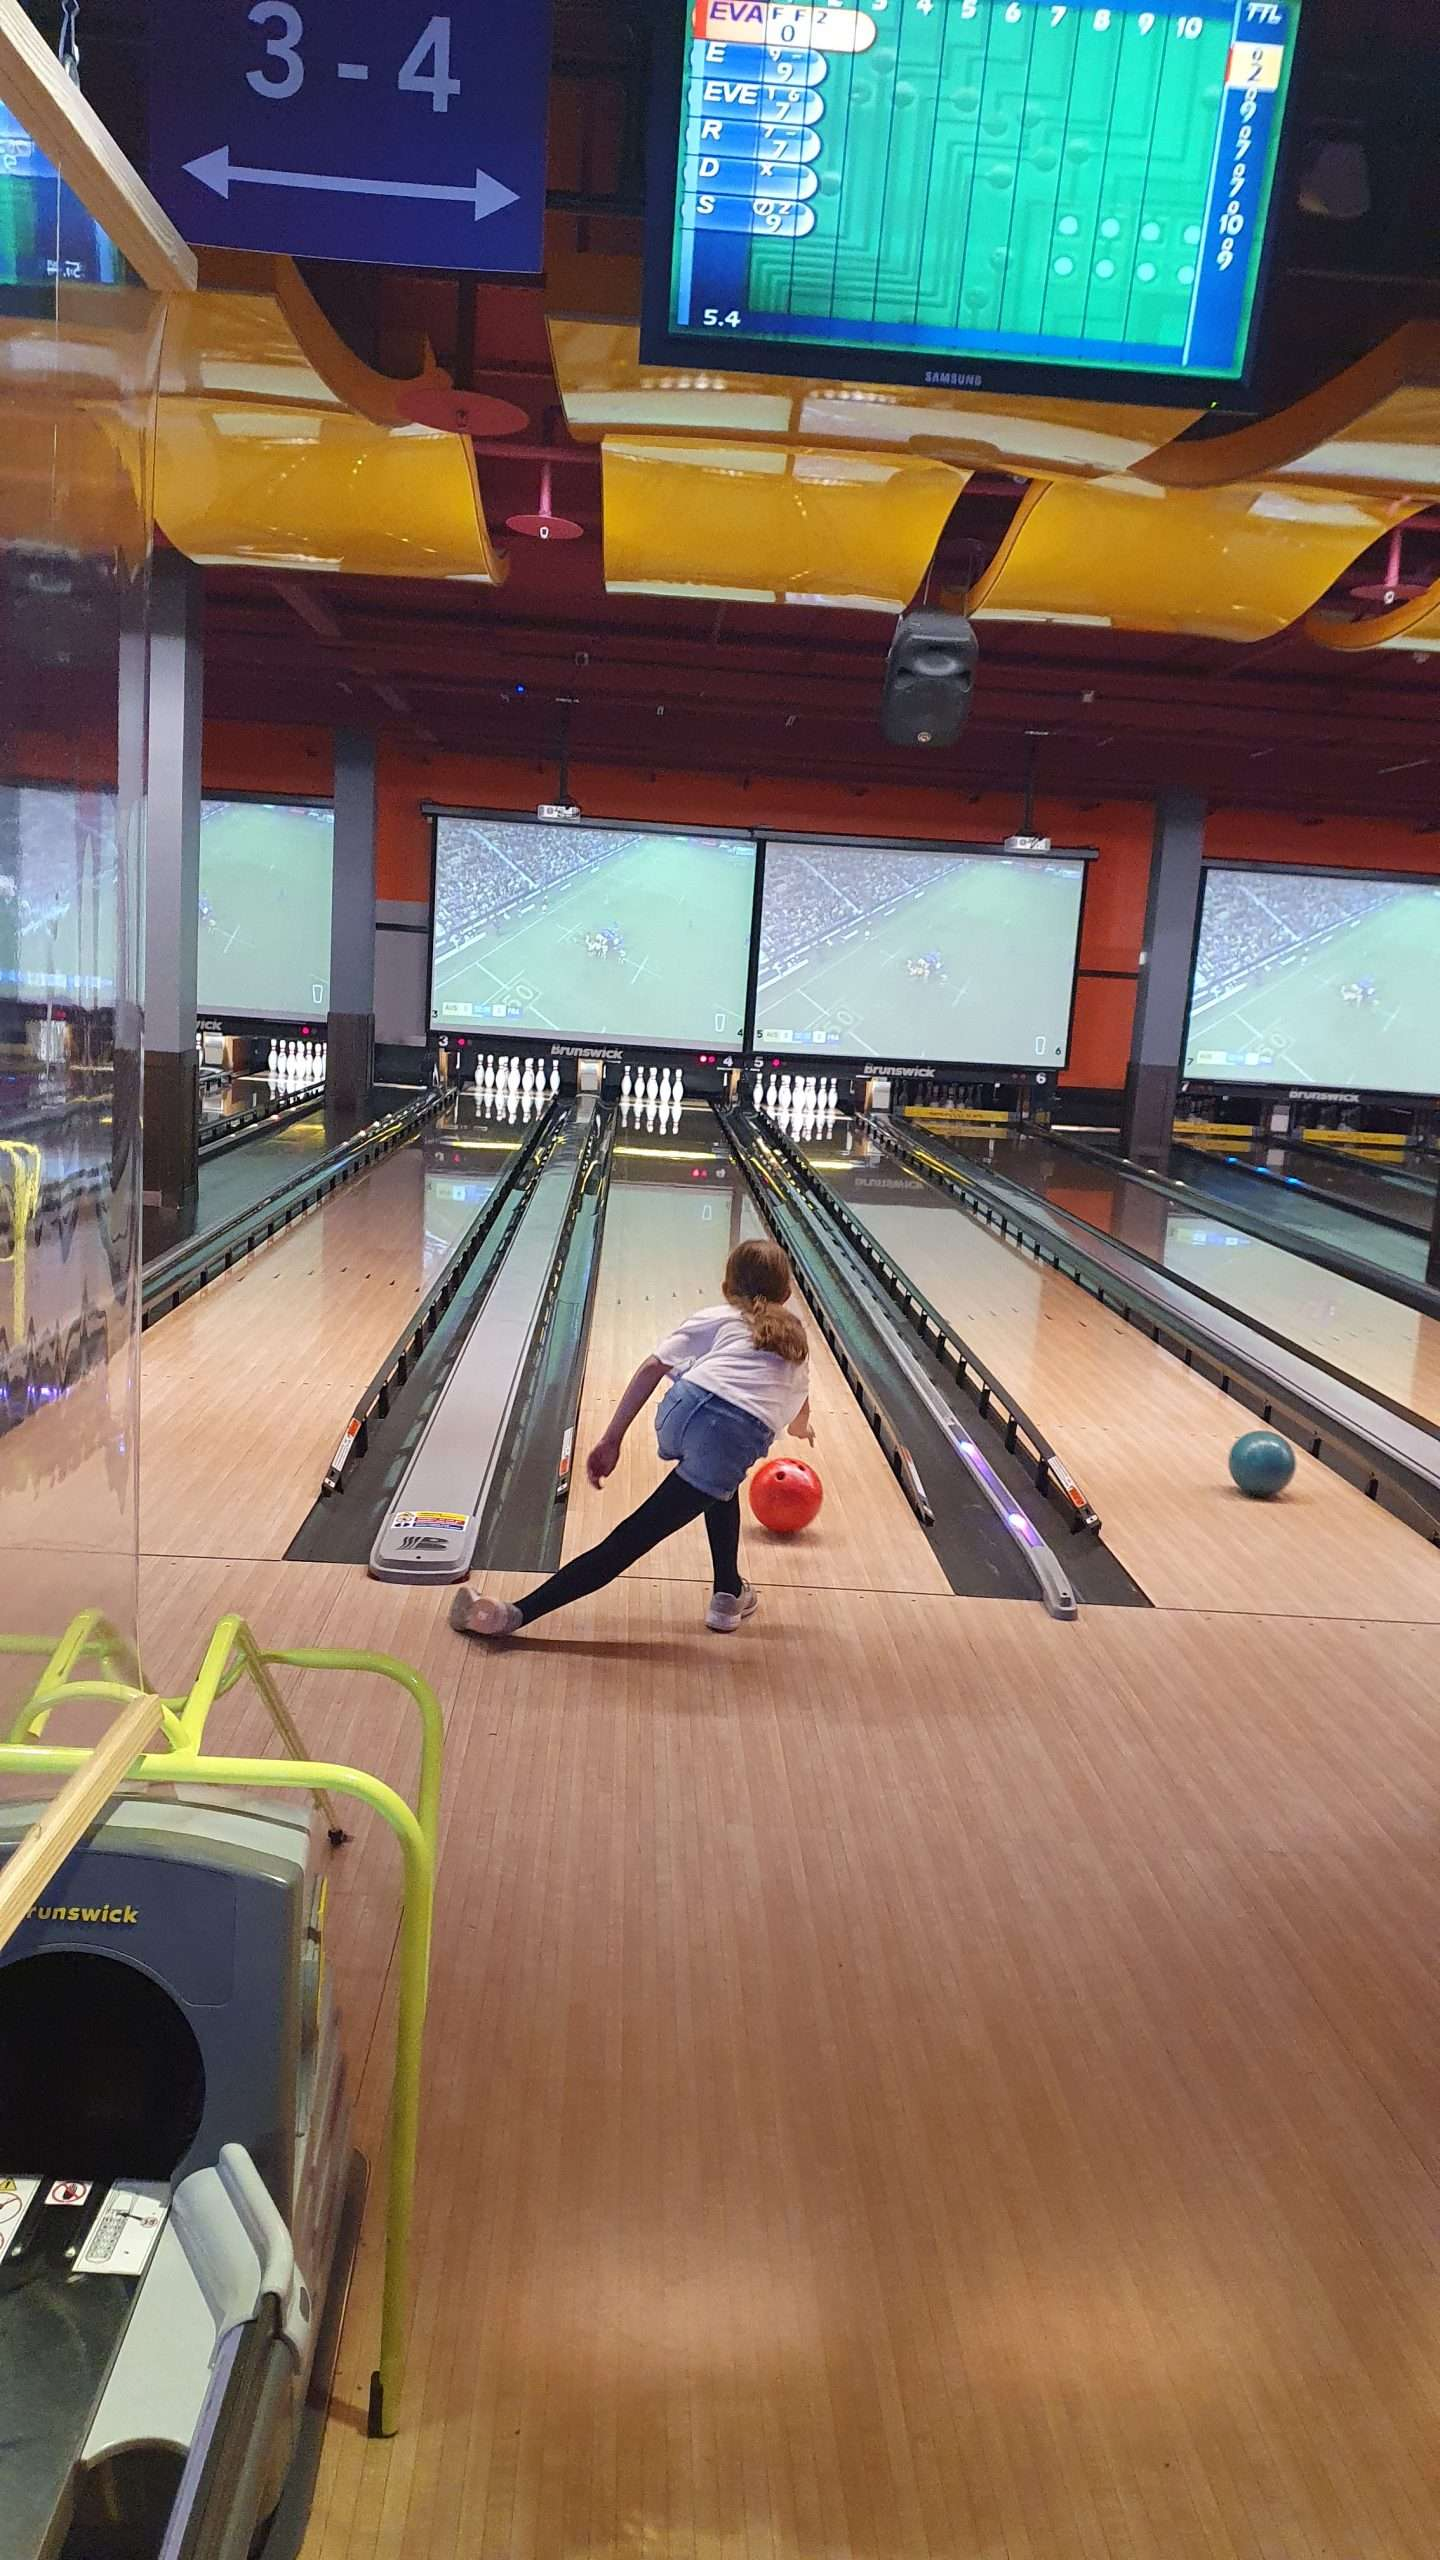 Bowling is right up our alley!